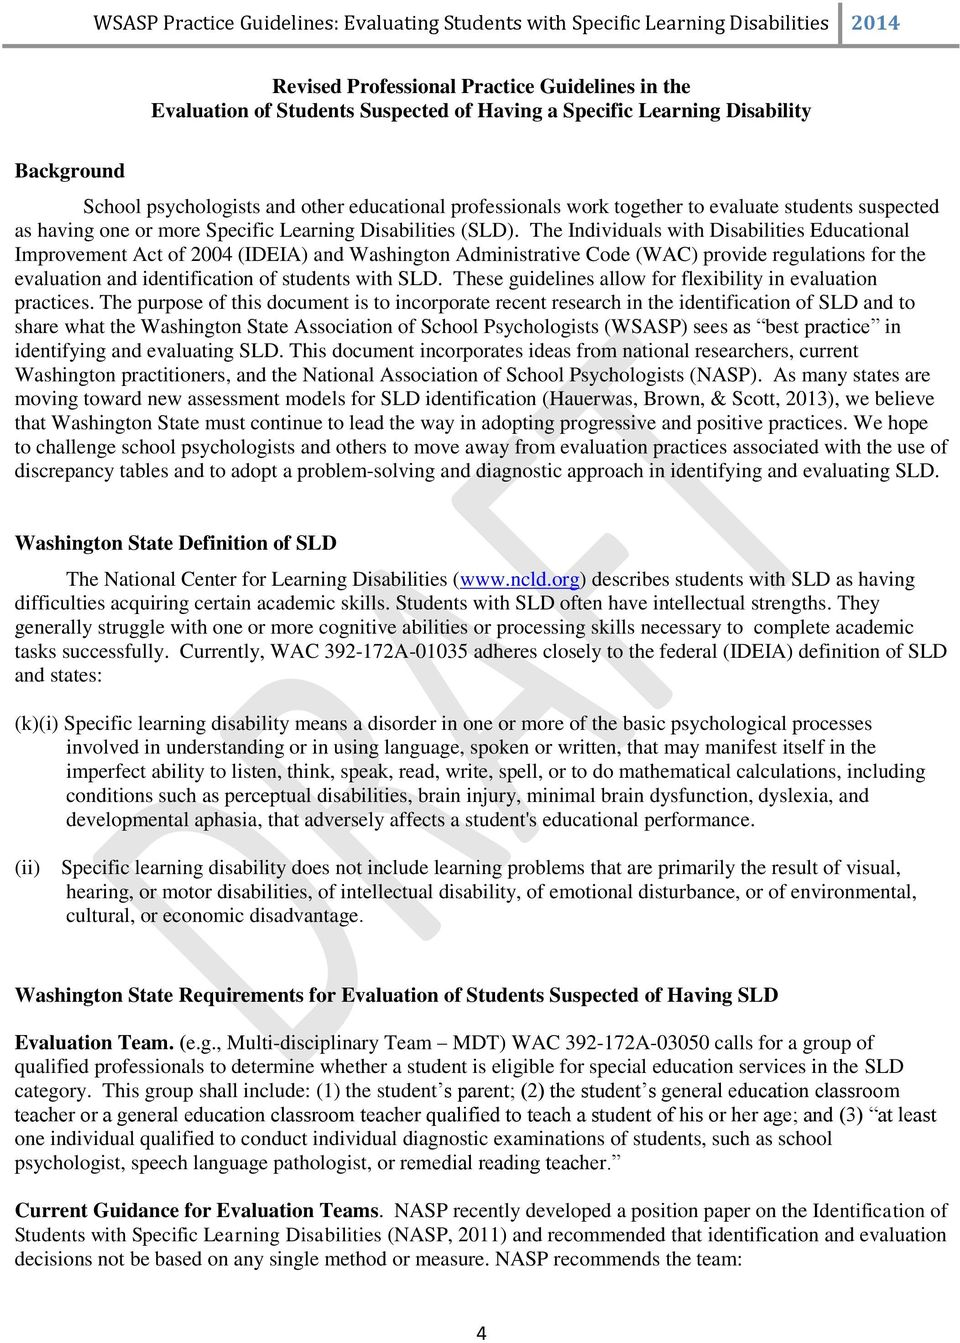 The Individuals with Disabilities Educational Improvement Act of 2004 (IDEIA) and Washington Administrative Code (WAC) provide regulations for the evaluation and identification of students with SLD.